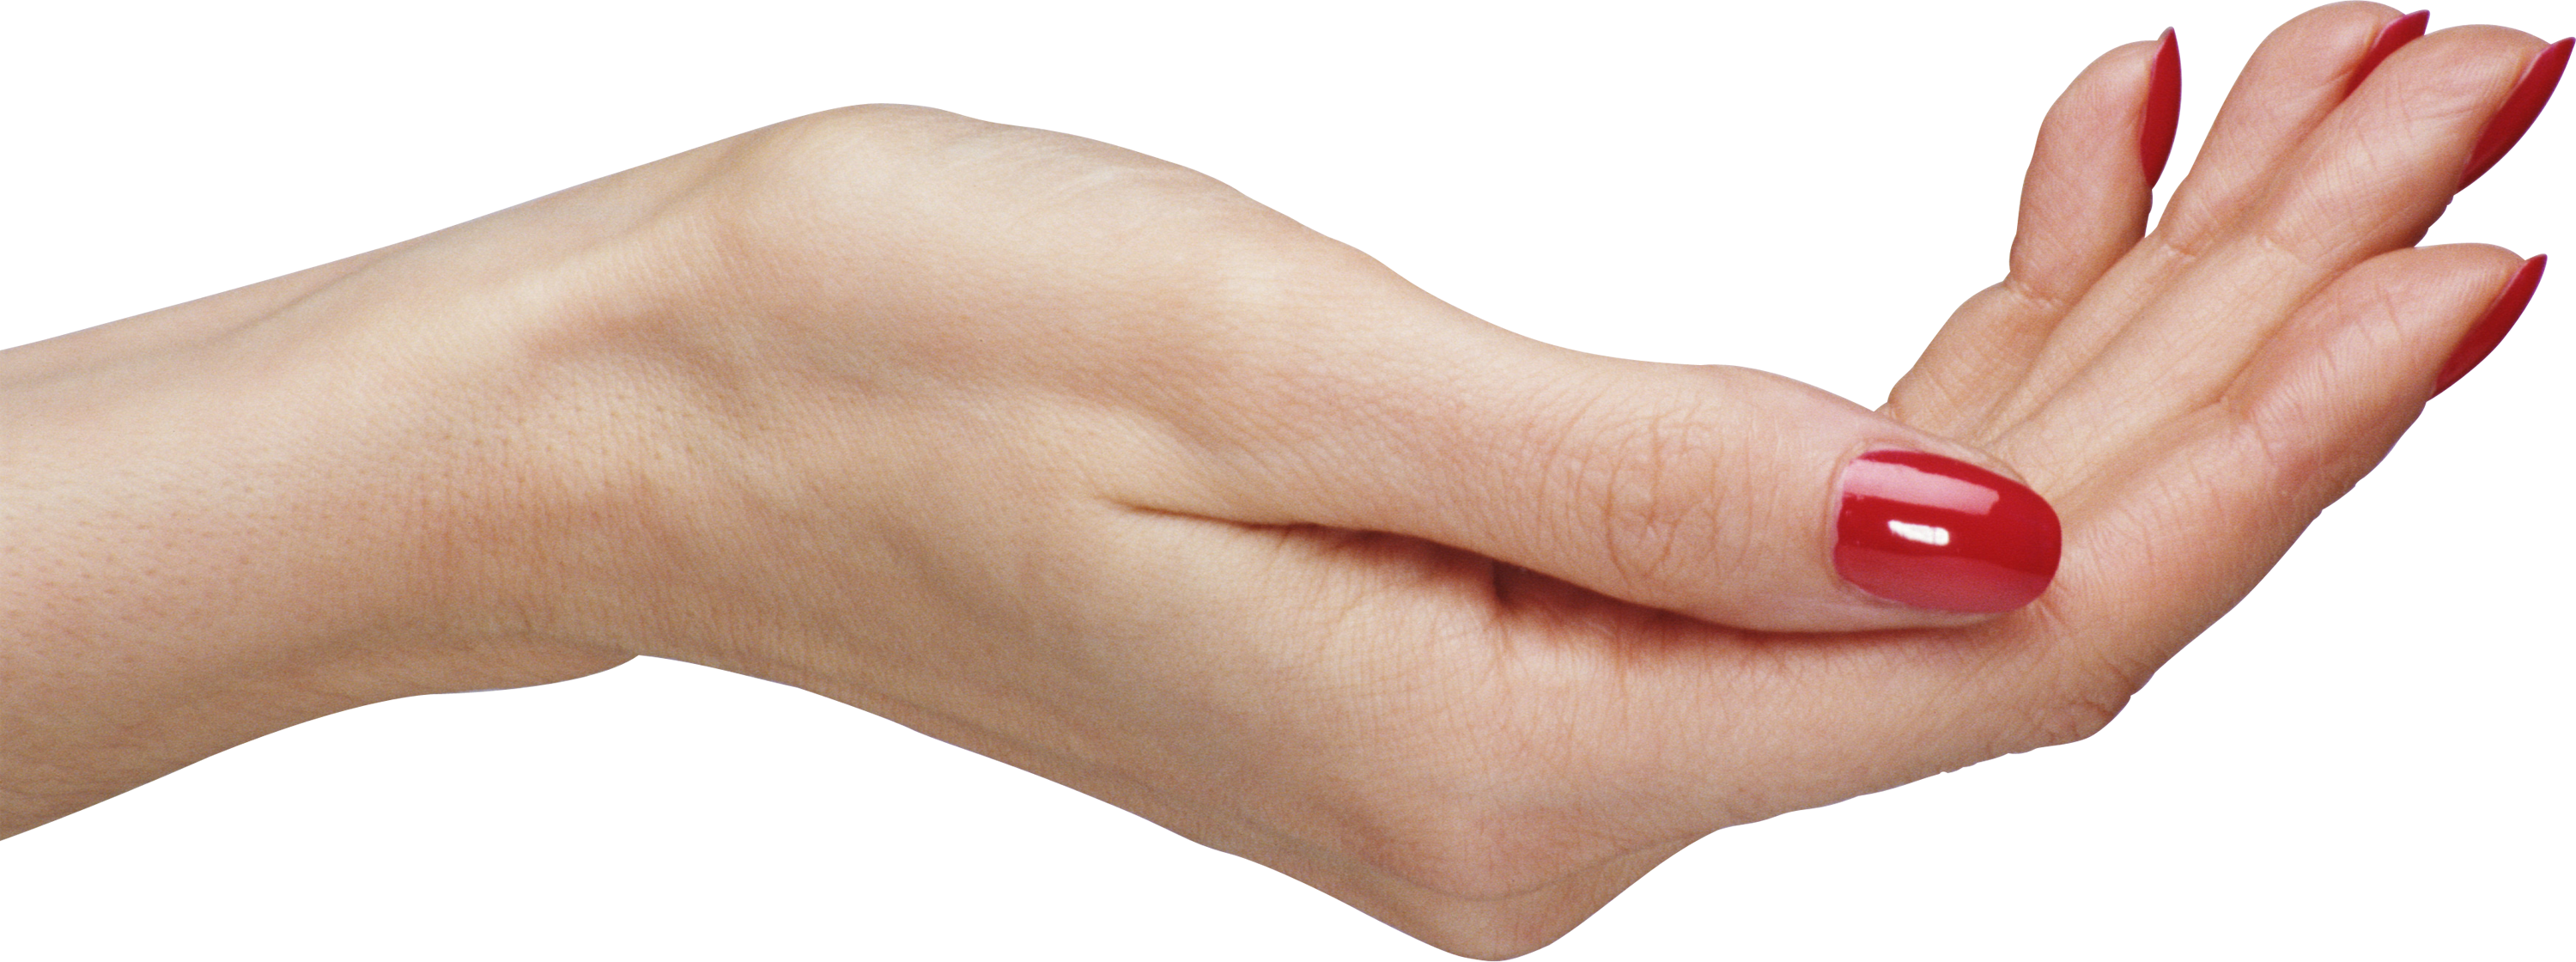 Skin clipart big hand. Hands png image purepng